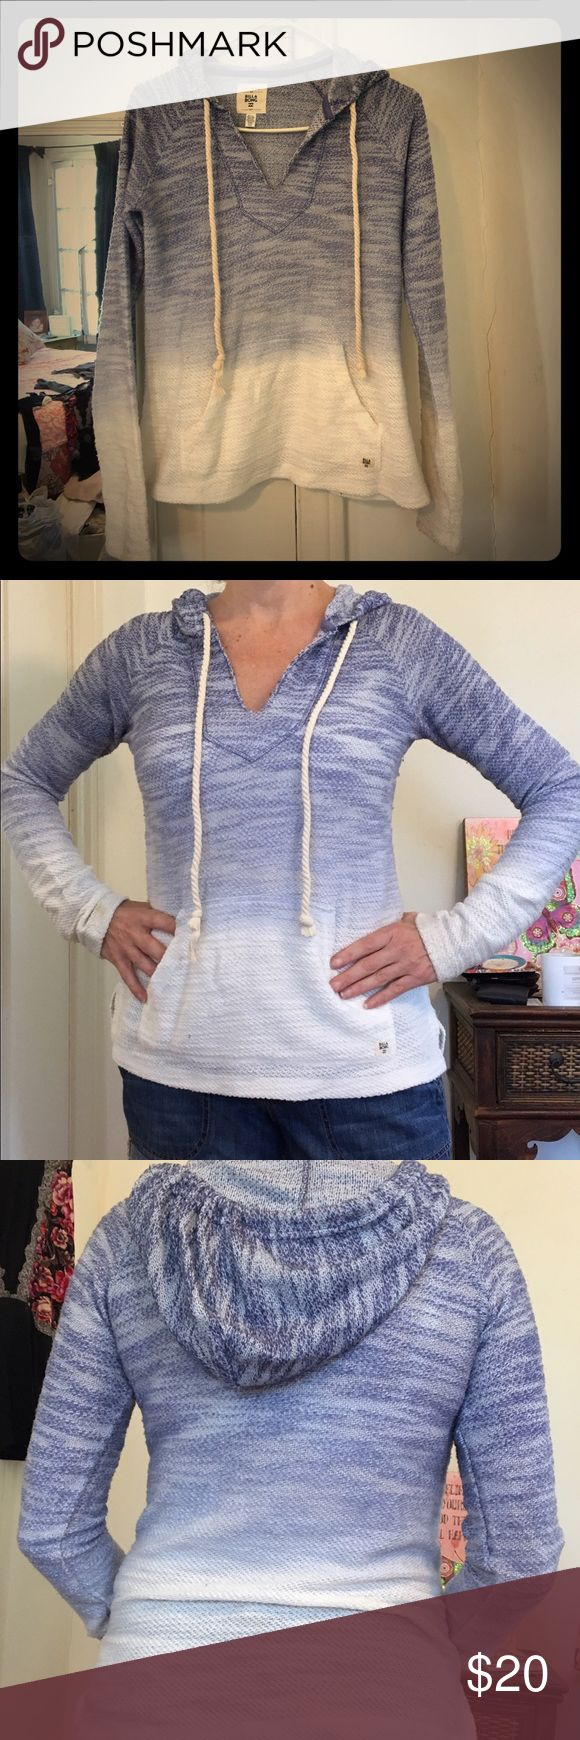 Billabong hoodie. Hardly worn. Shades of blue and white with front pocket and drawstring hoodie. Super cozy! Billabong Tops Sweatshirts & Hoodies